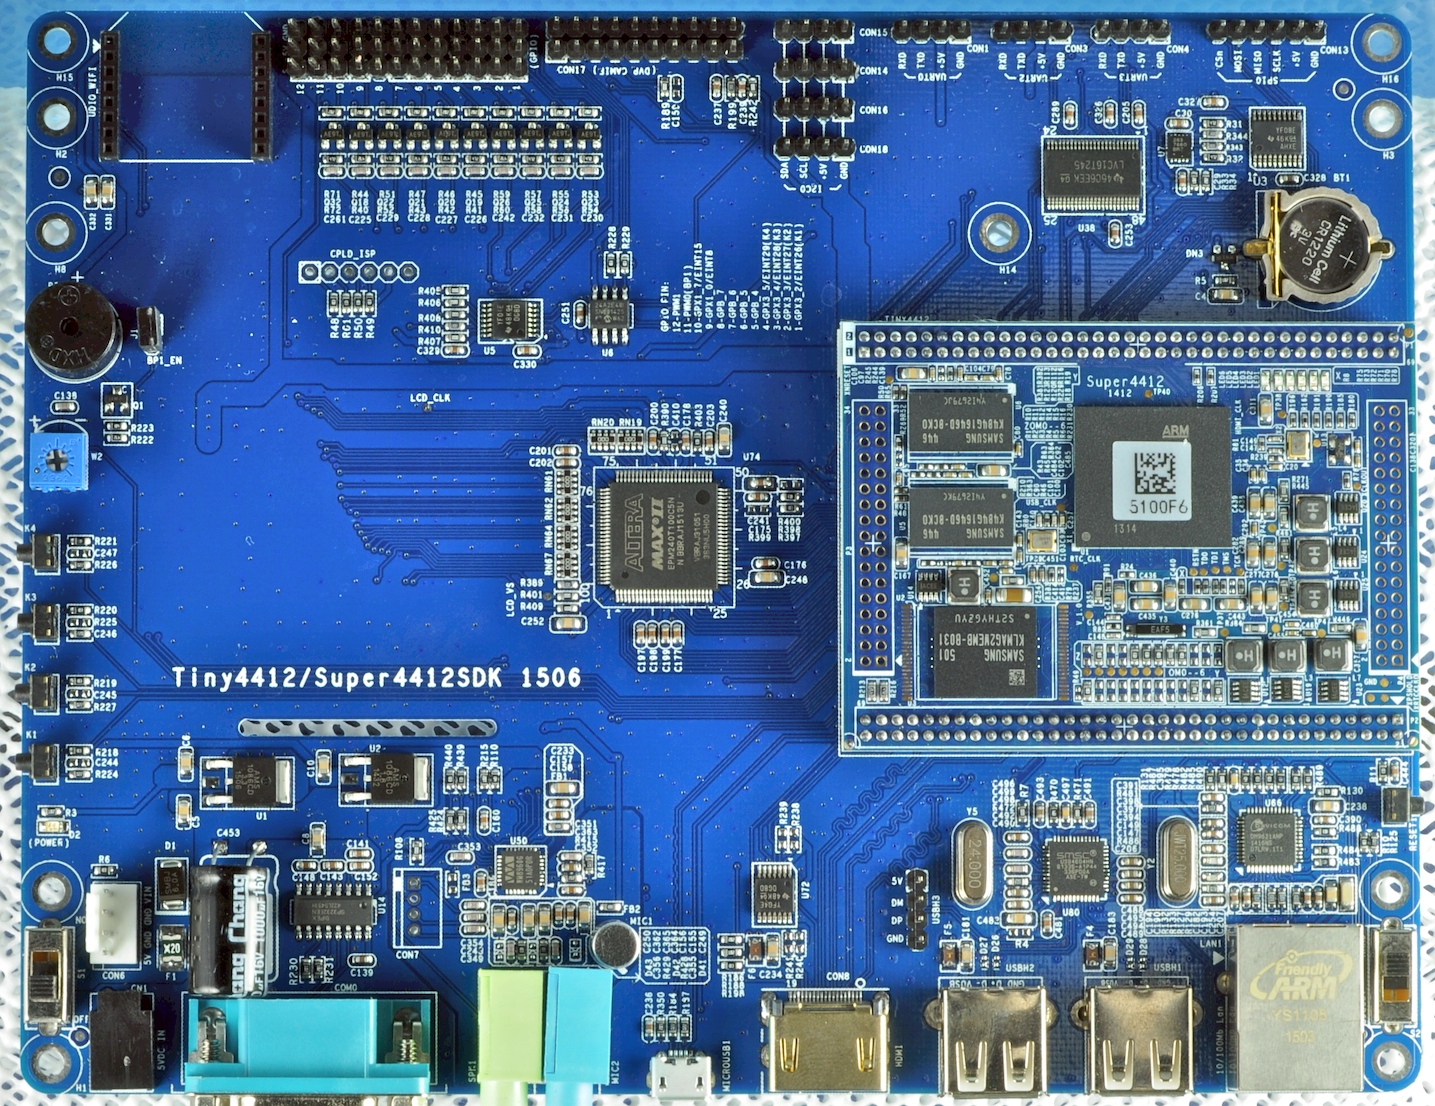 Wiringpi Nanopi Name Super4412 Quad Cortex A9 Core Board With Sdk Carrier